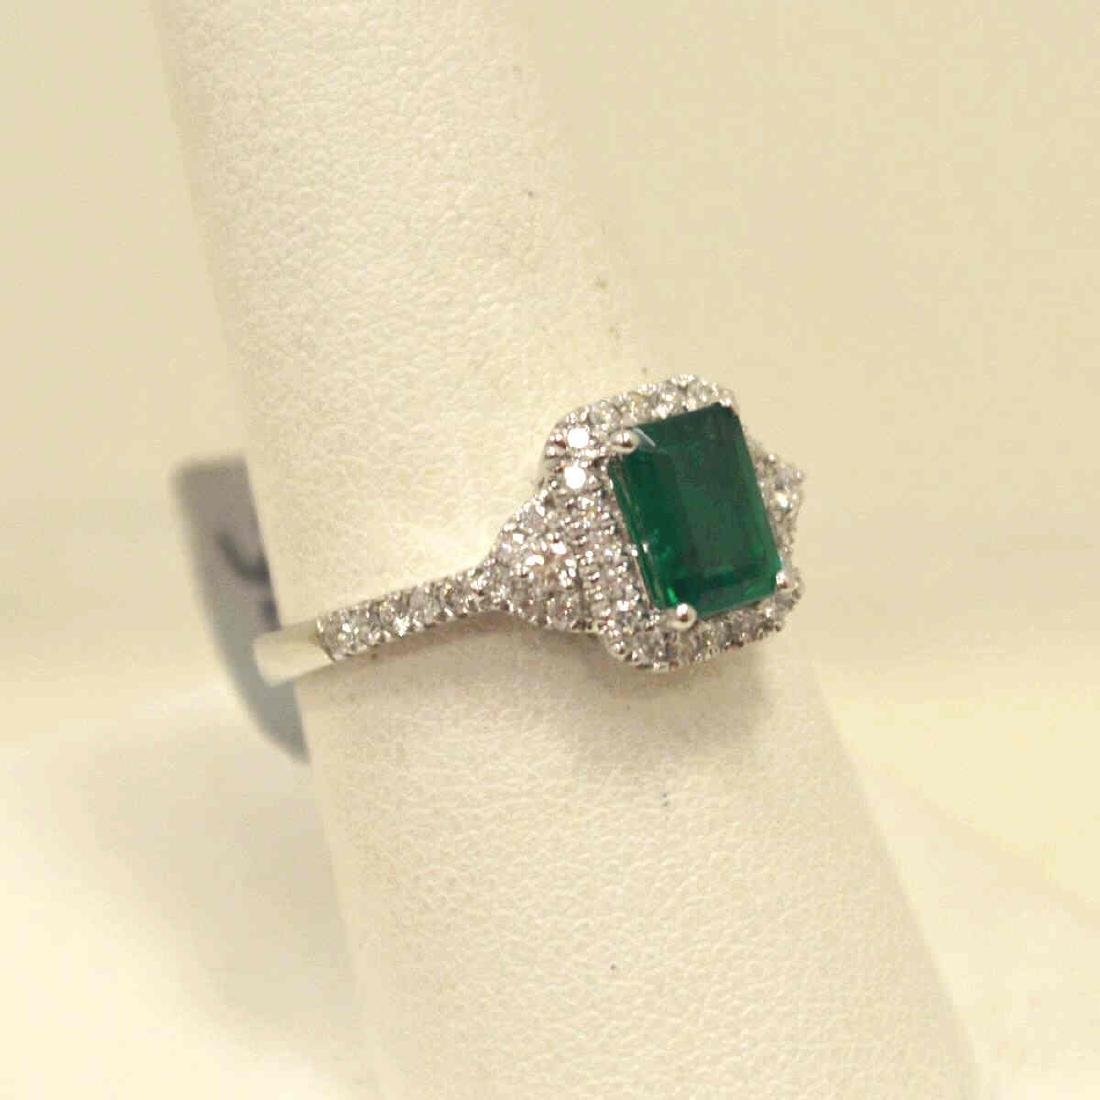 14kt white gold emerald and diamond ring - 2